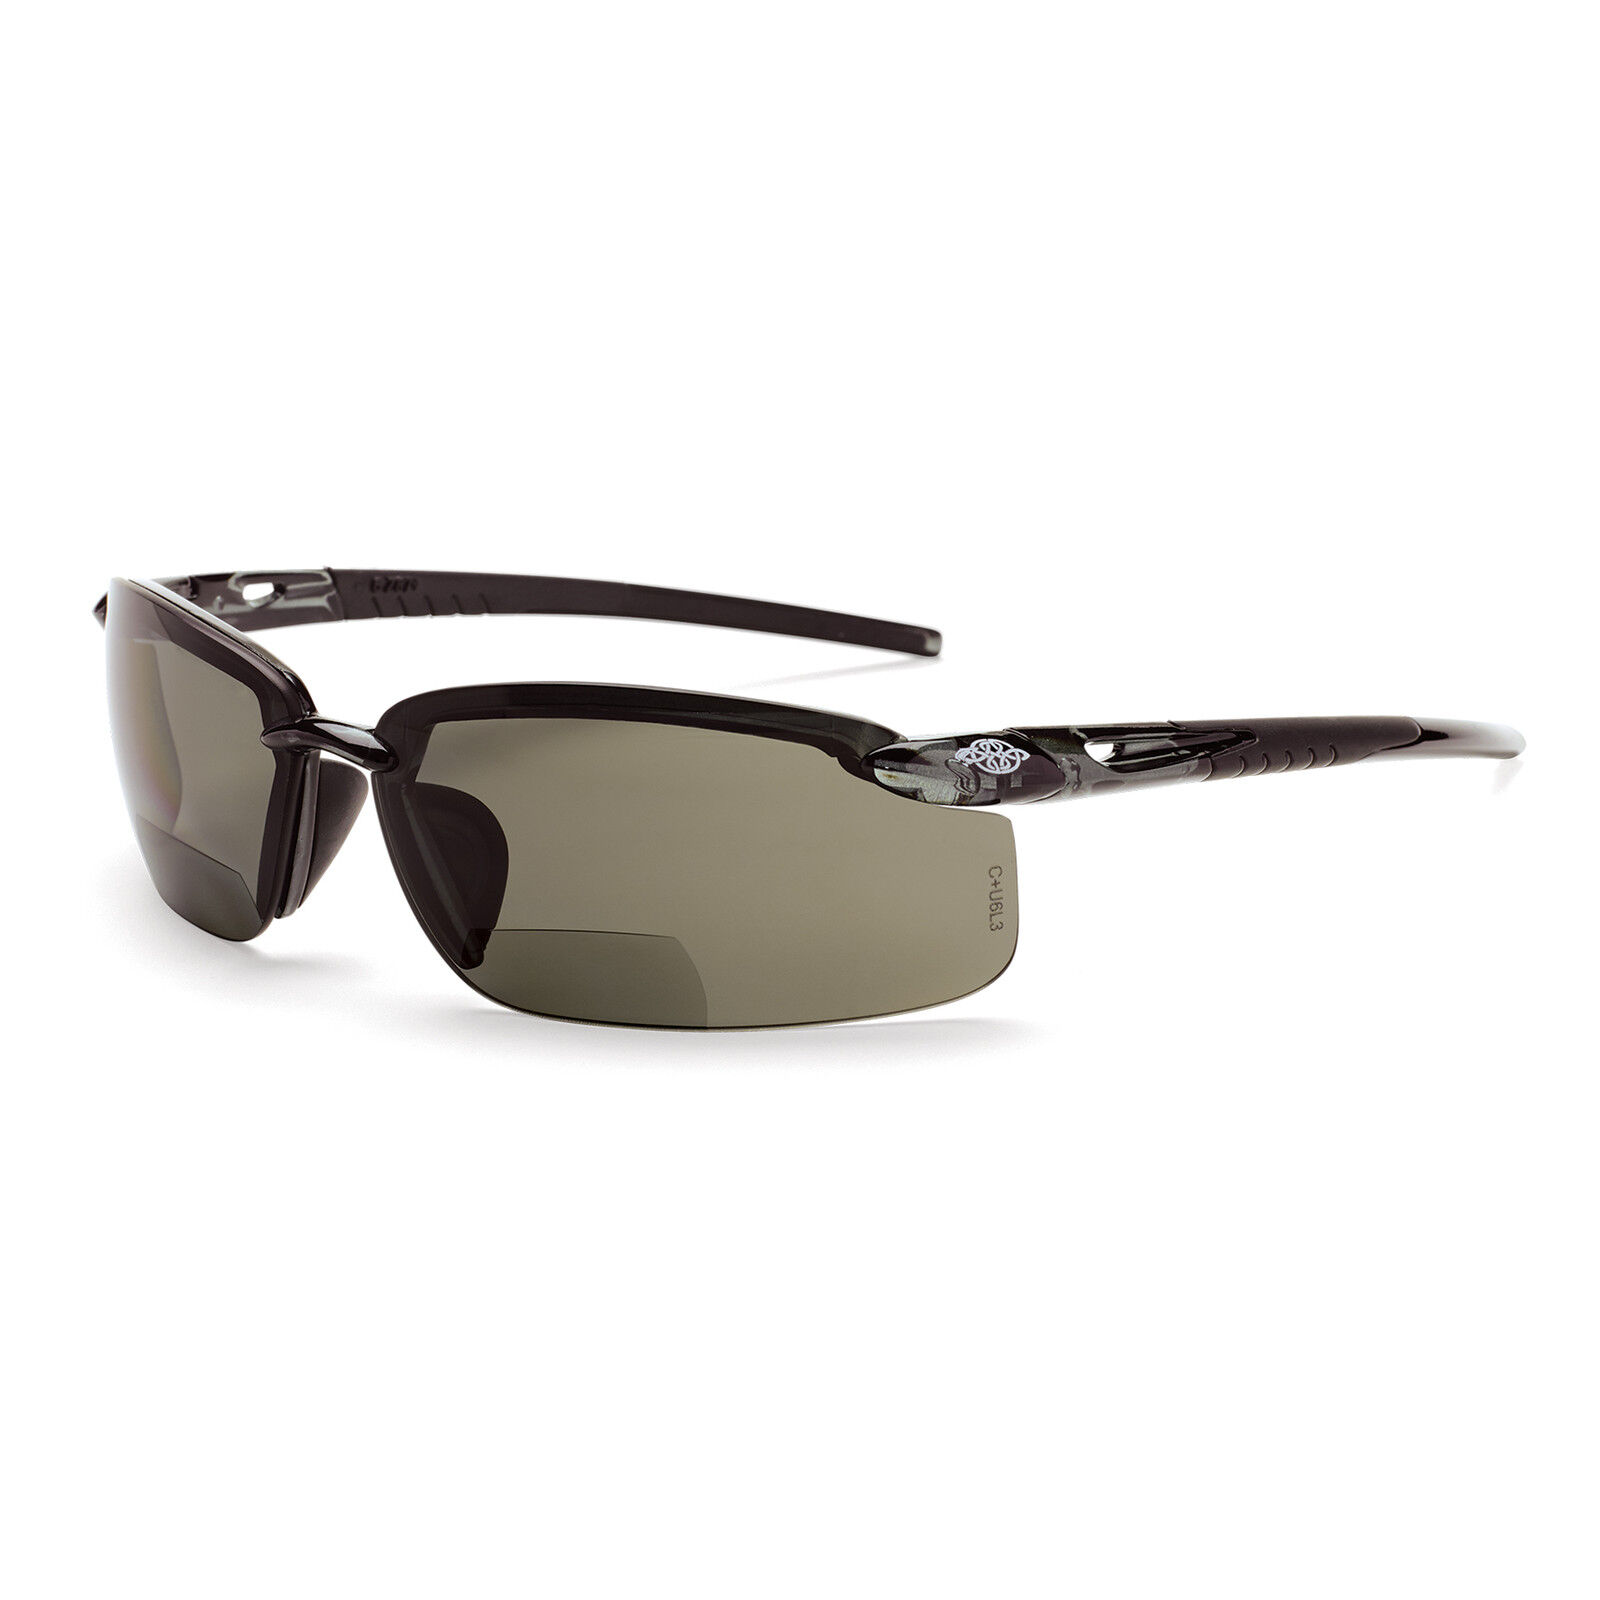 b046ffaea9 Details about CrossFire Bifocal Safety Glasses with 2.0 Polarized Smoke Lens